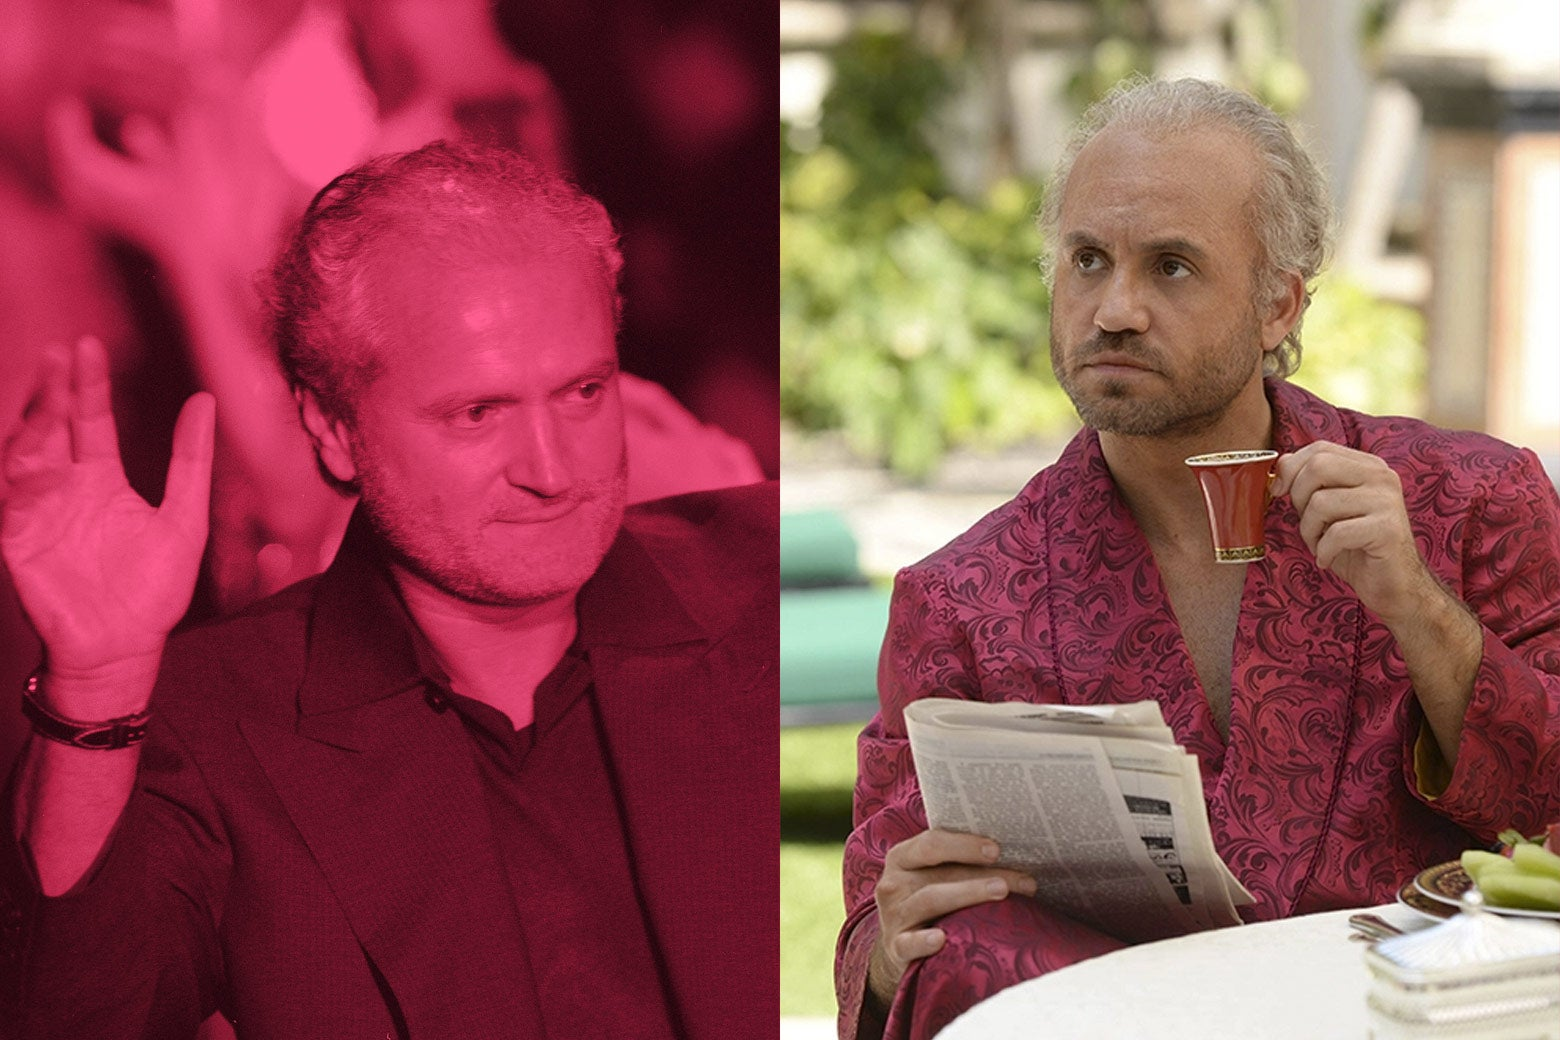 Gianni Versace and Edgar Ramirez playing Versace in The Assassination of Gianni Versace.